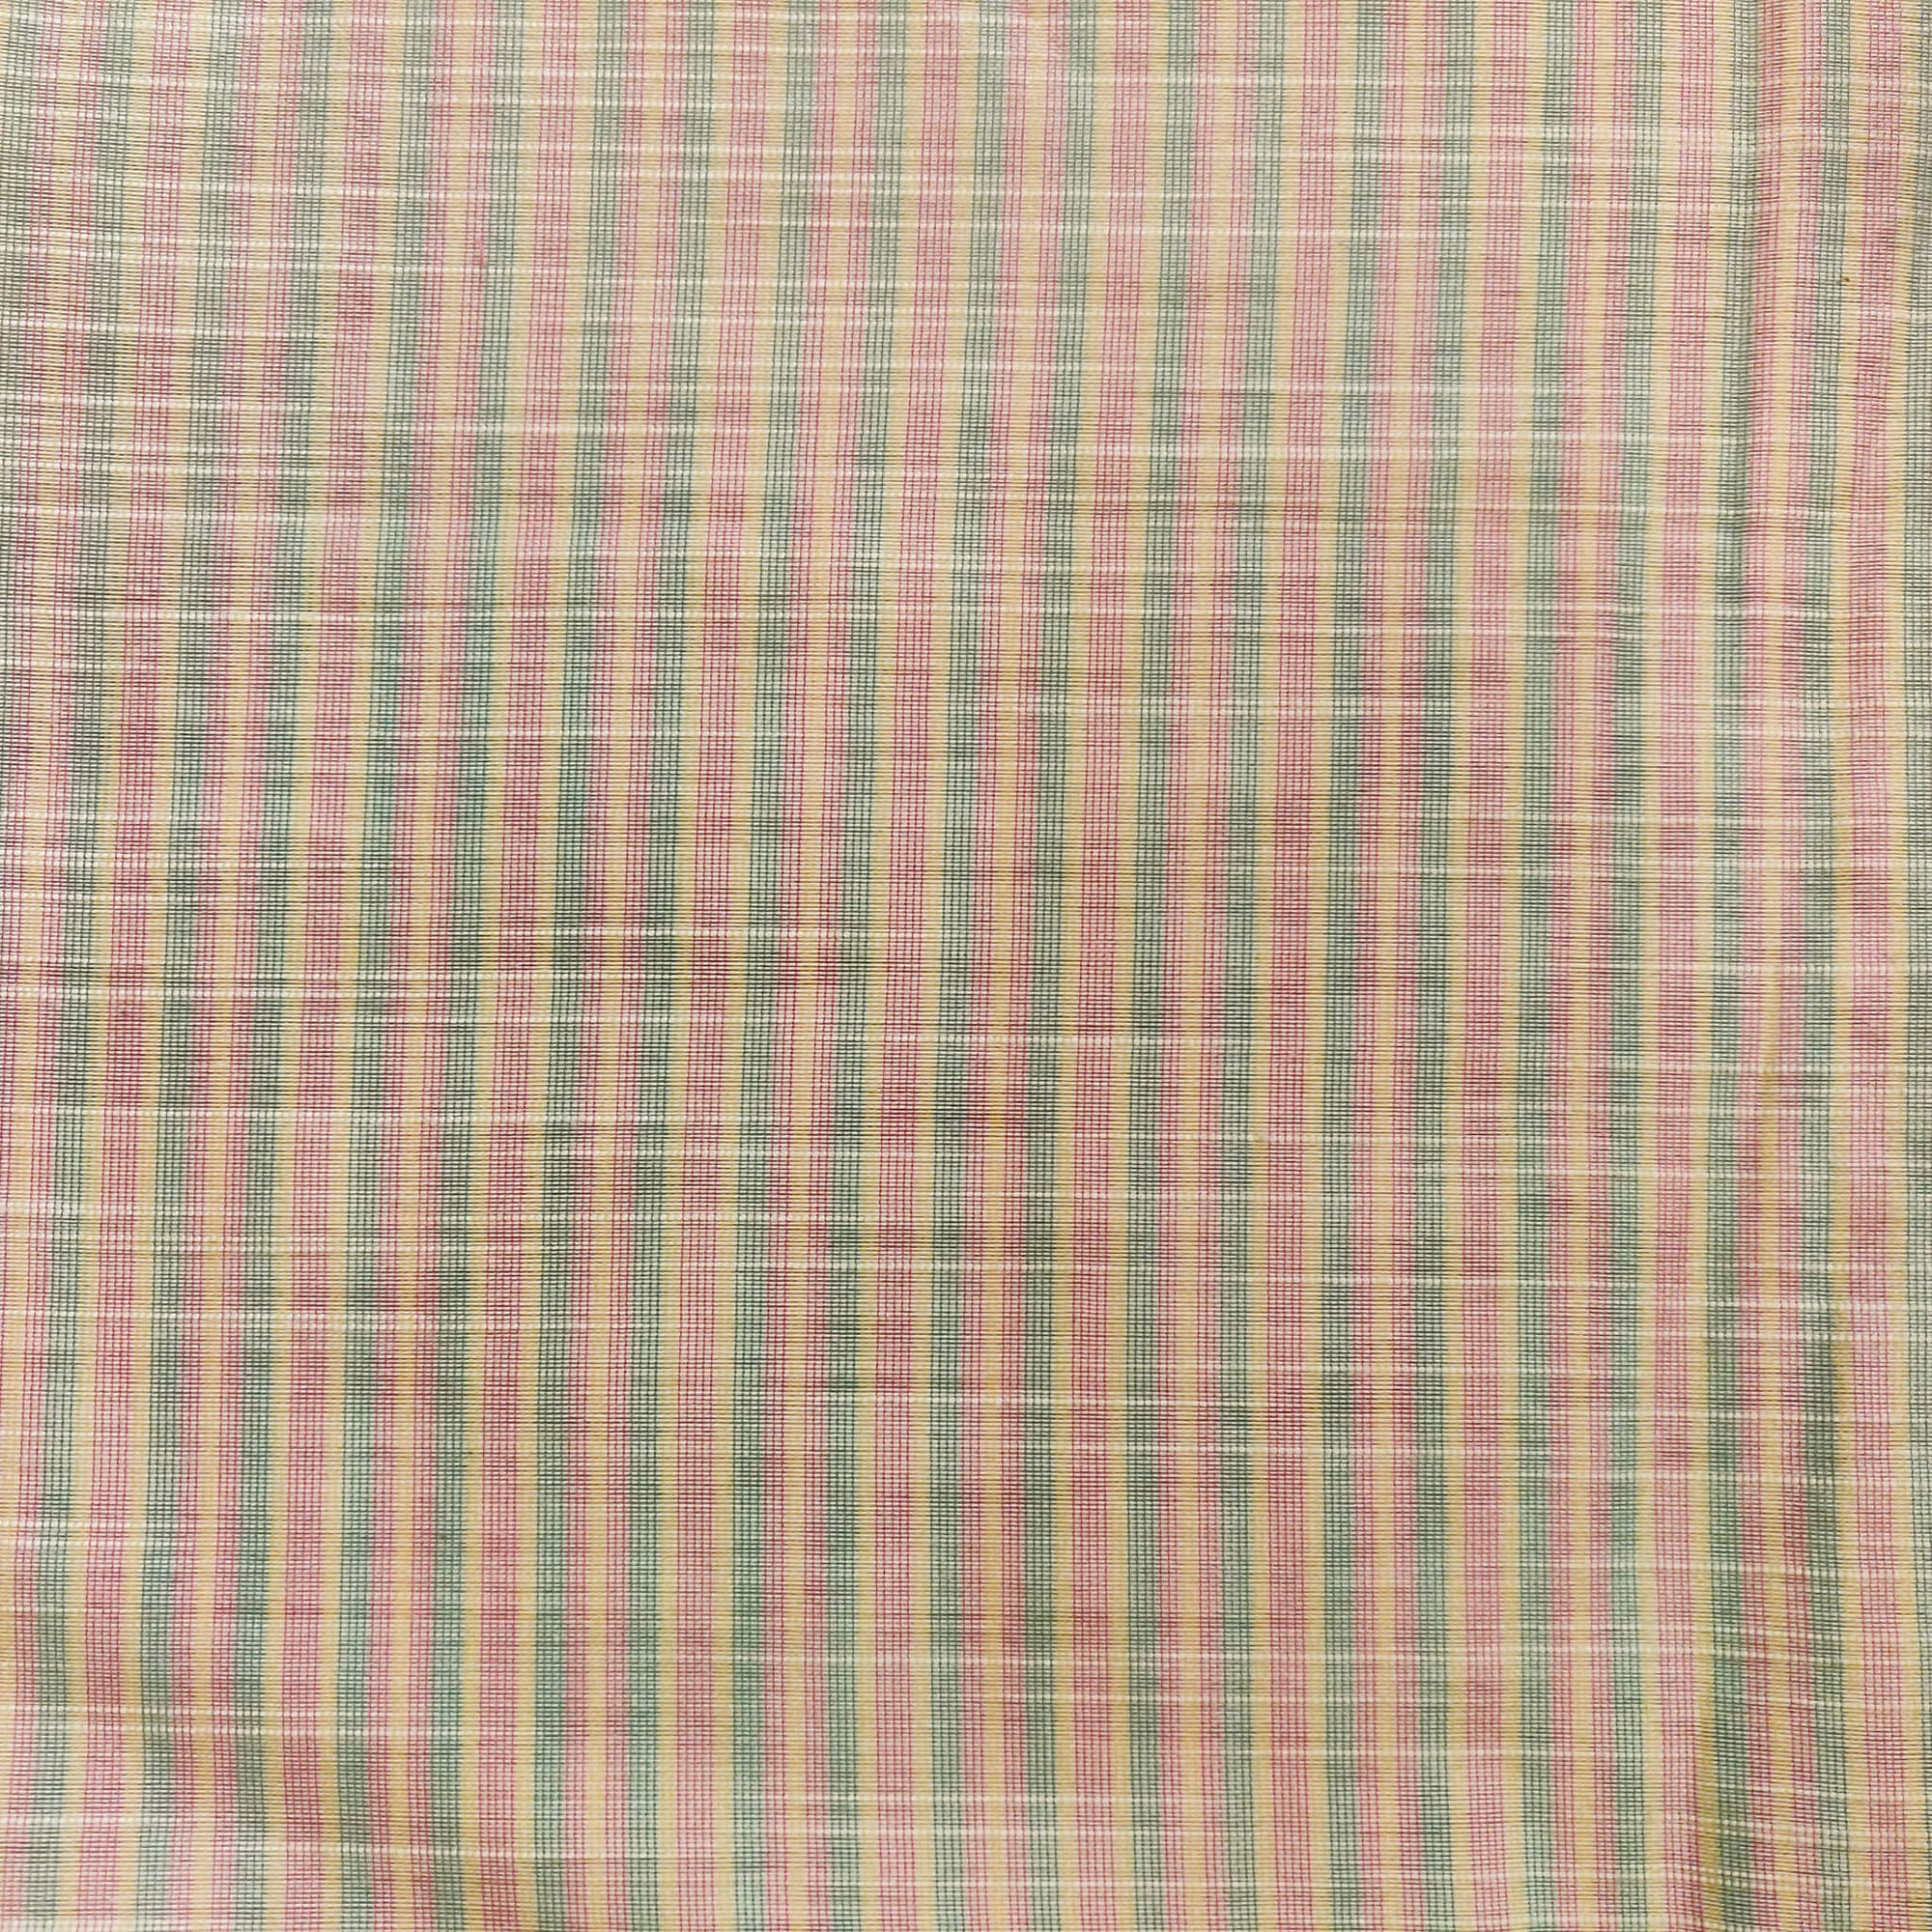 Cotton Silk Off White With Green And Light Pink Tiny Stripes Woven Fabric